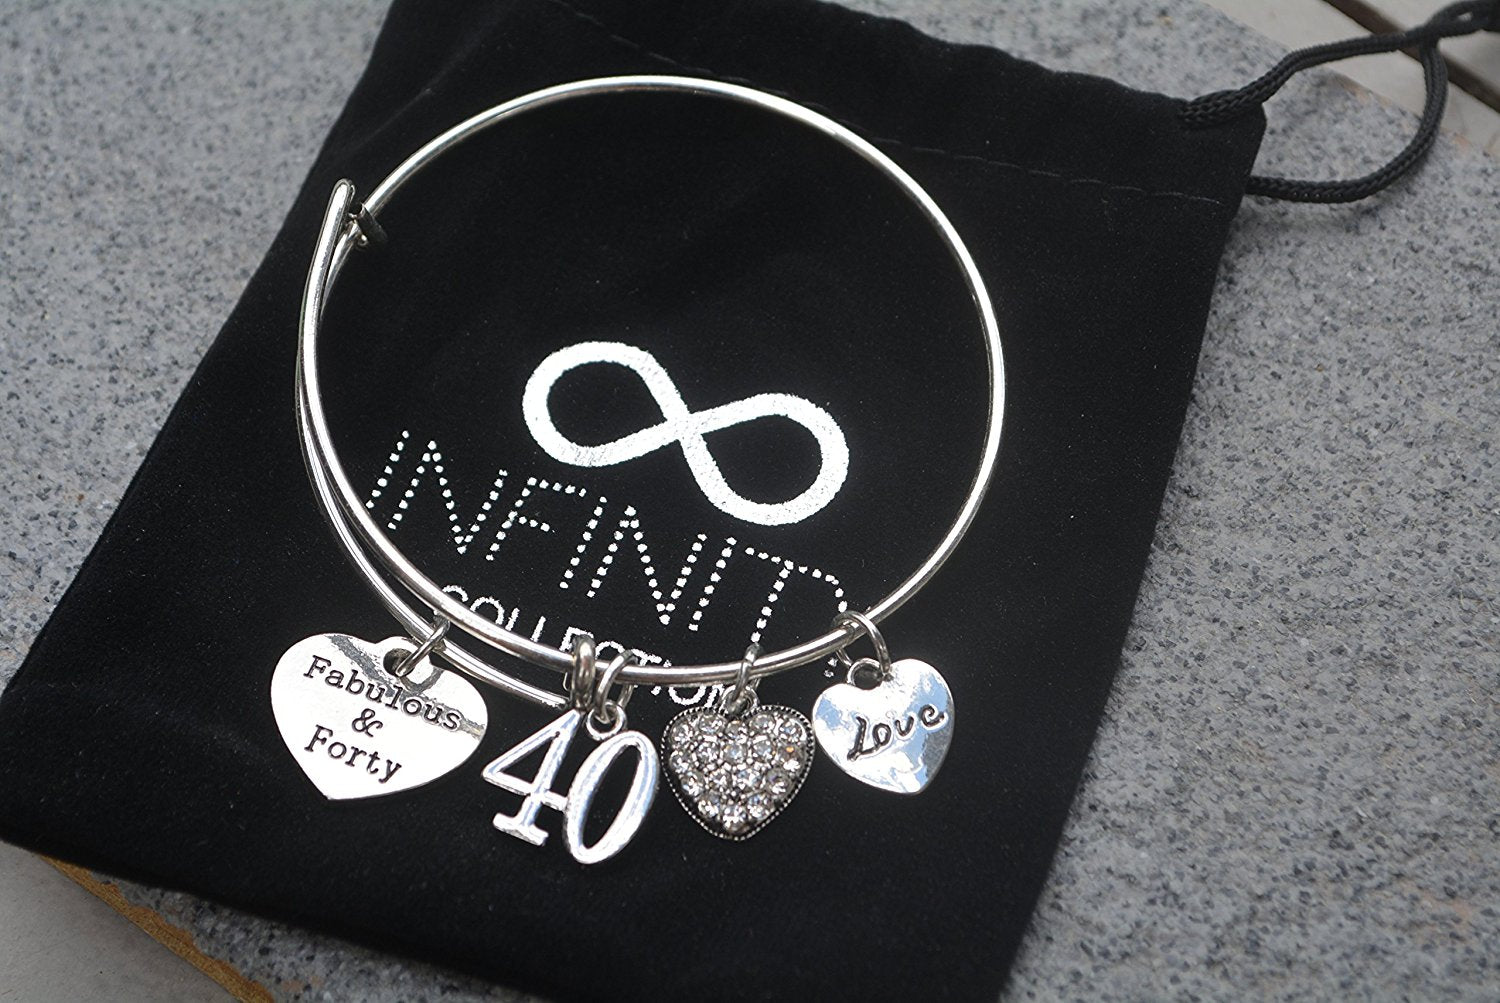 40th Birthday Gifts For Women Expandable Charm Bracelet Ideas